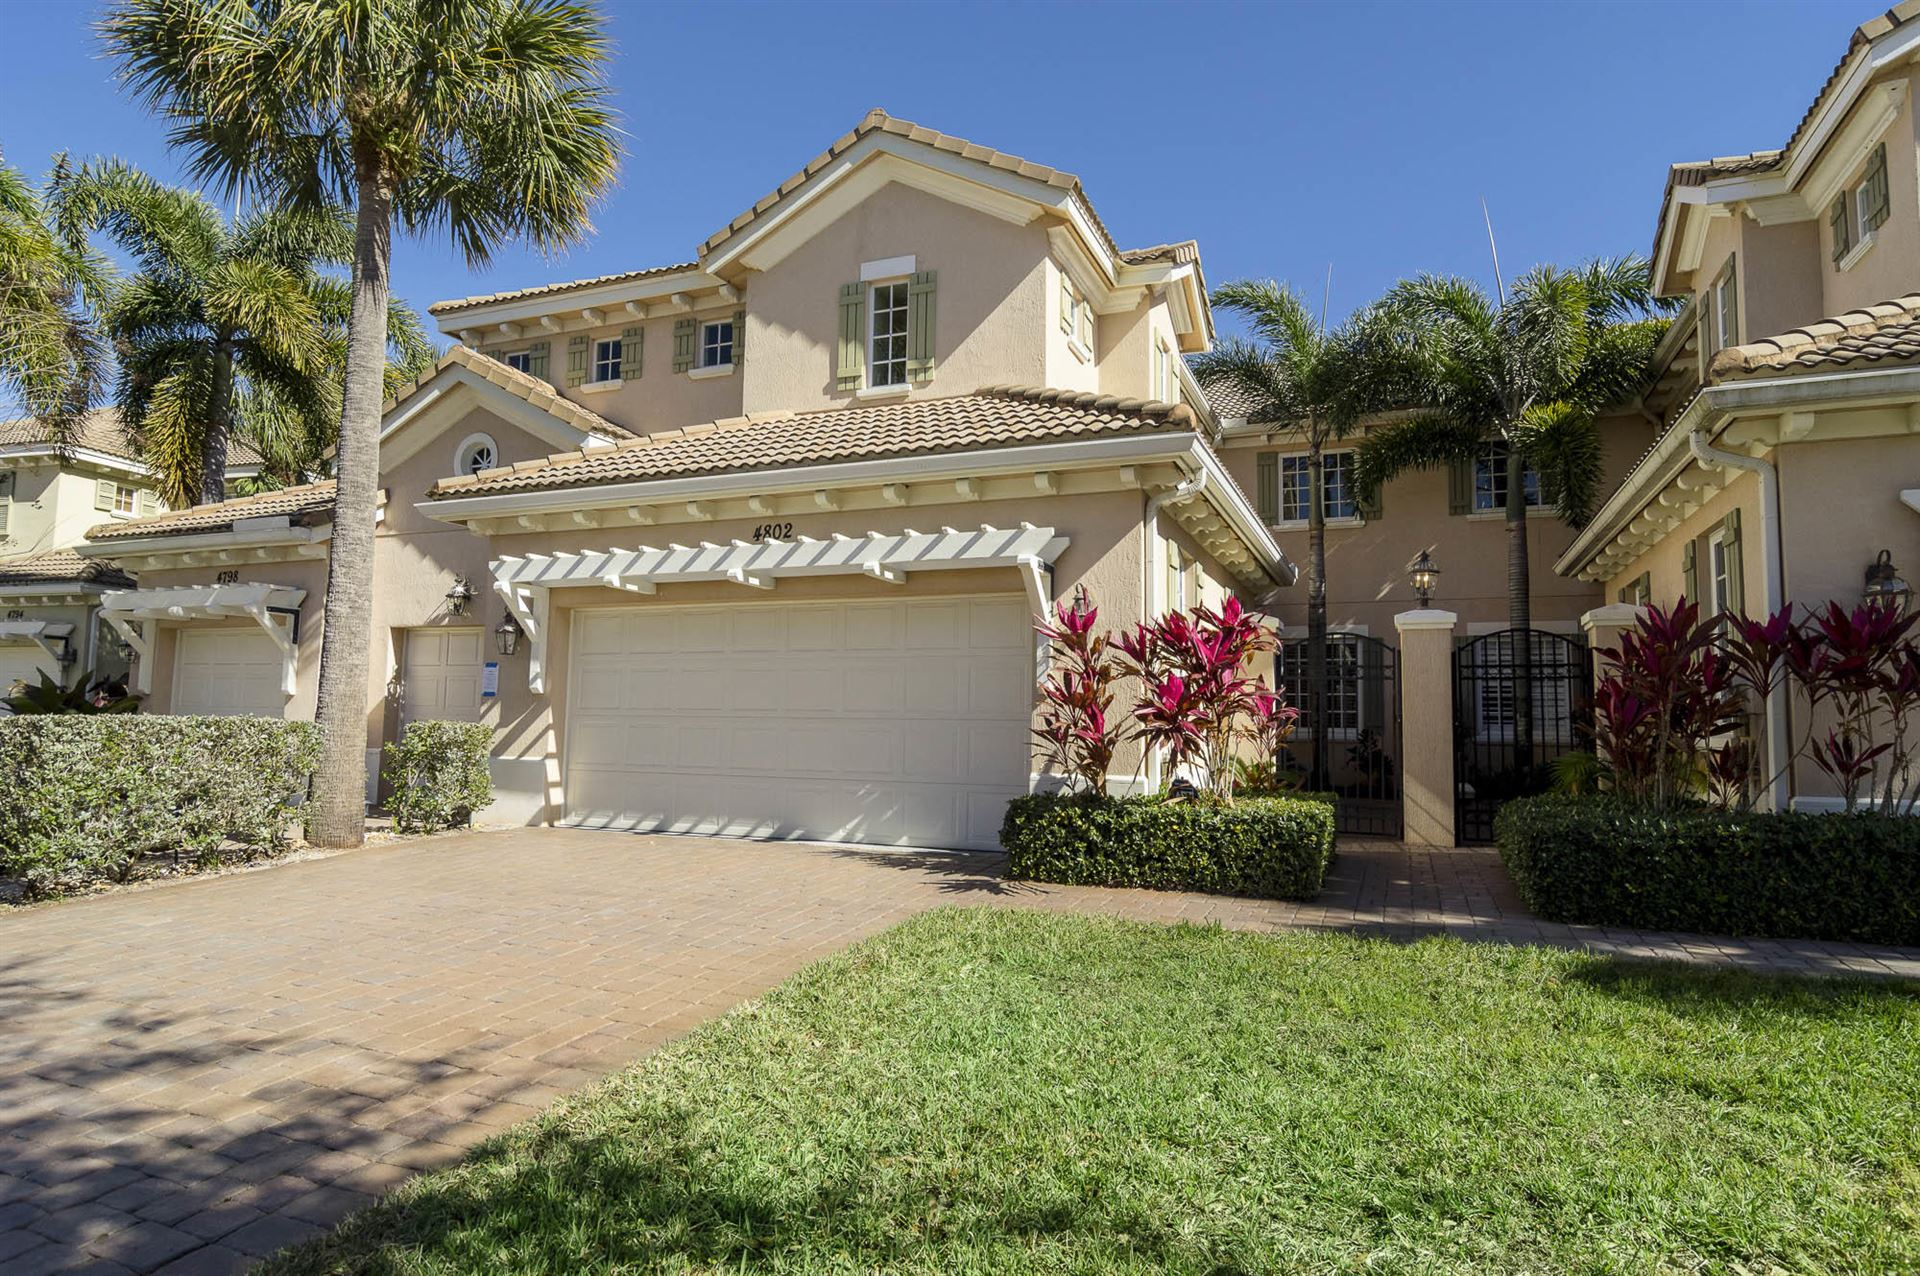 Photo of 4802 Cadiz Circle, Palm Beach Gardens, FL 33418 (MLS # RX-10687839)